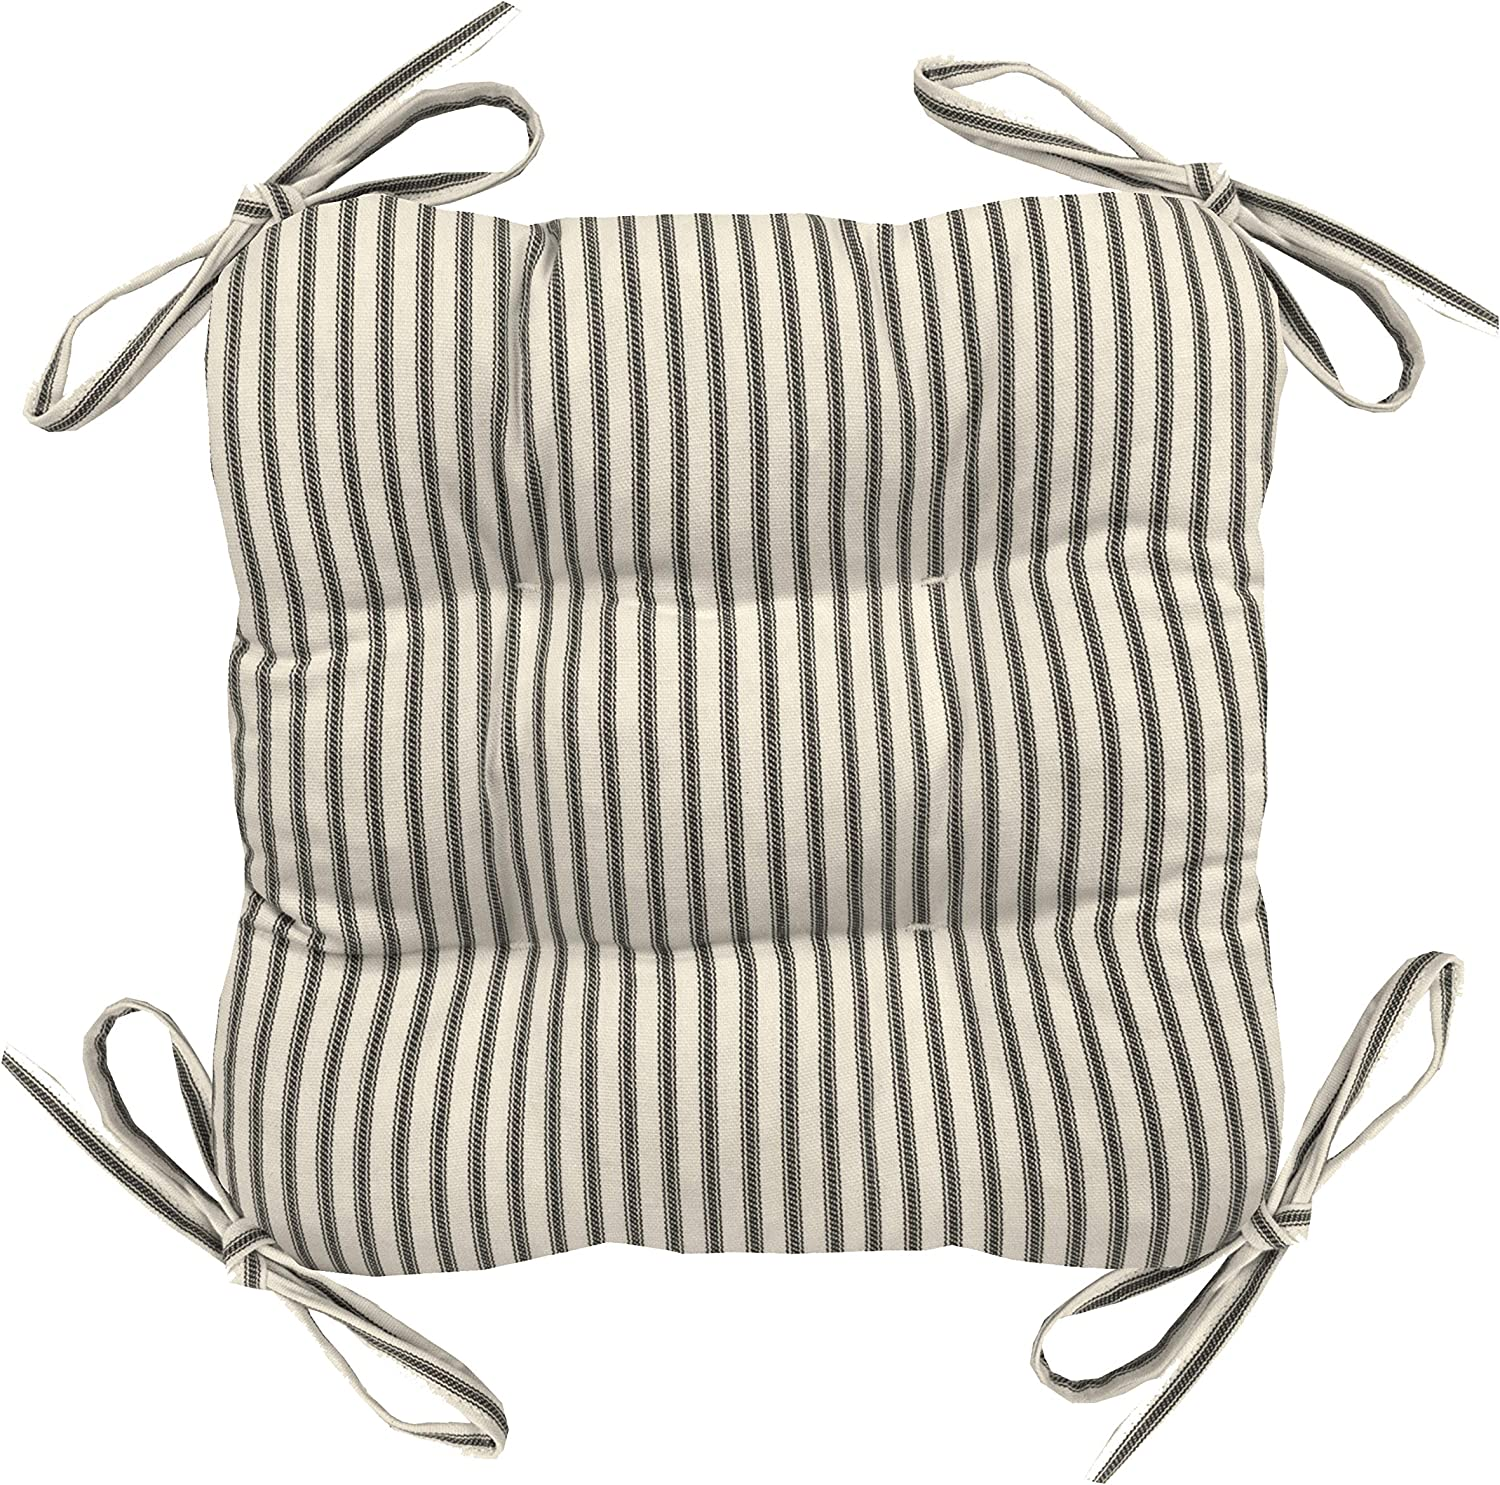 Barnett Home Decor Ticking Stripe Natural Square Bar Stool Cushion with Ties Latex Foam for 12 Metal Industrial Barstools // 12 Tolix-Style Counter-Height Chairs Machine Washable